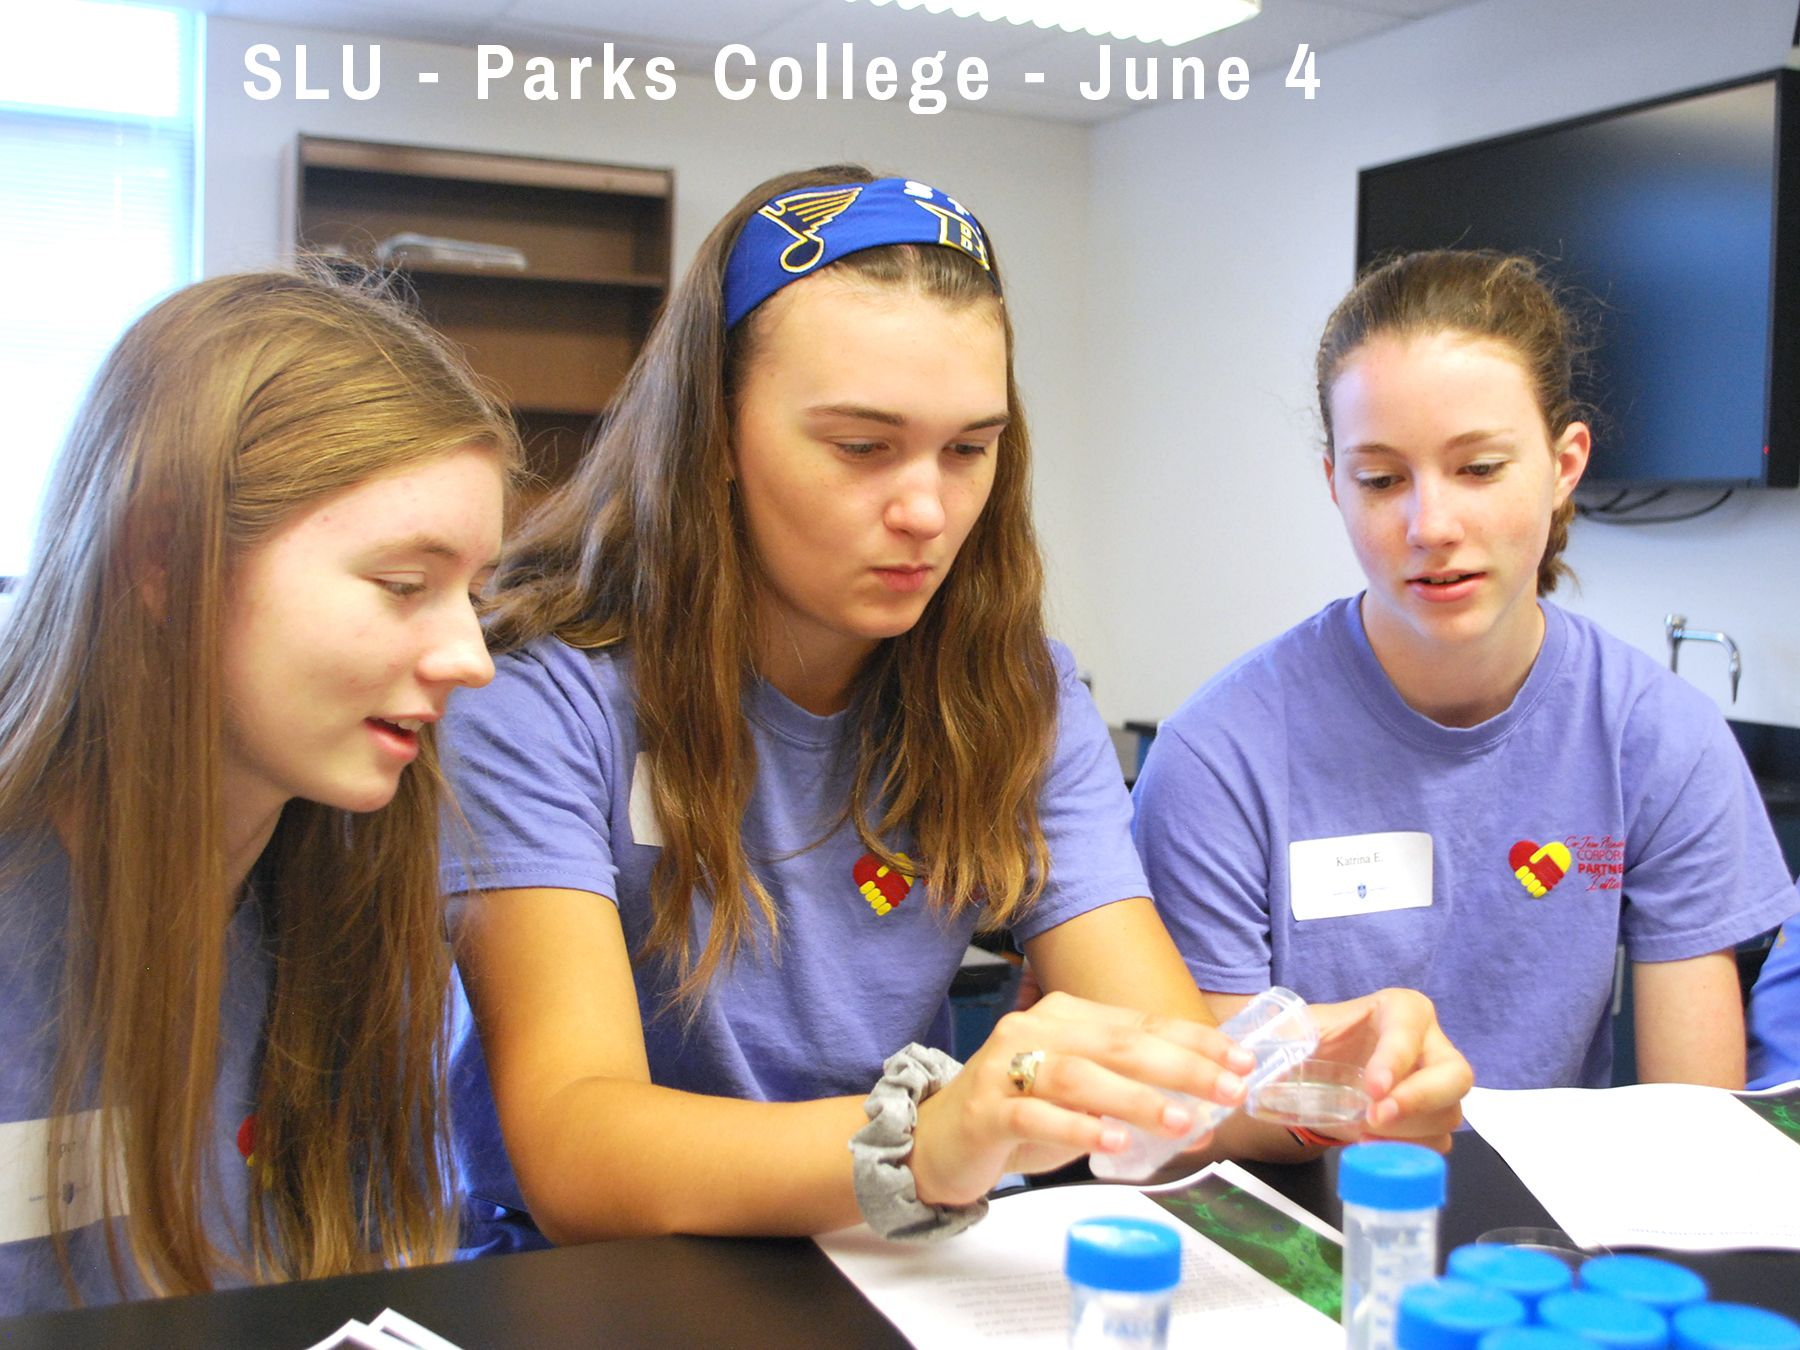 Cor Jesu students learn about biomedical engineering at SLU Parks College during SEE week